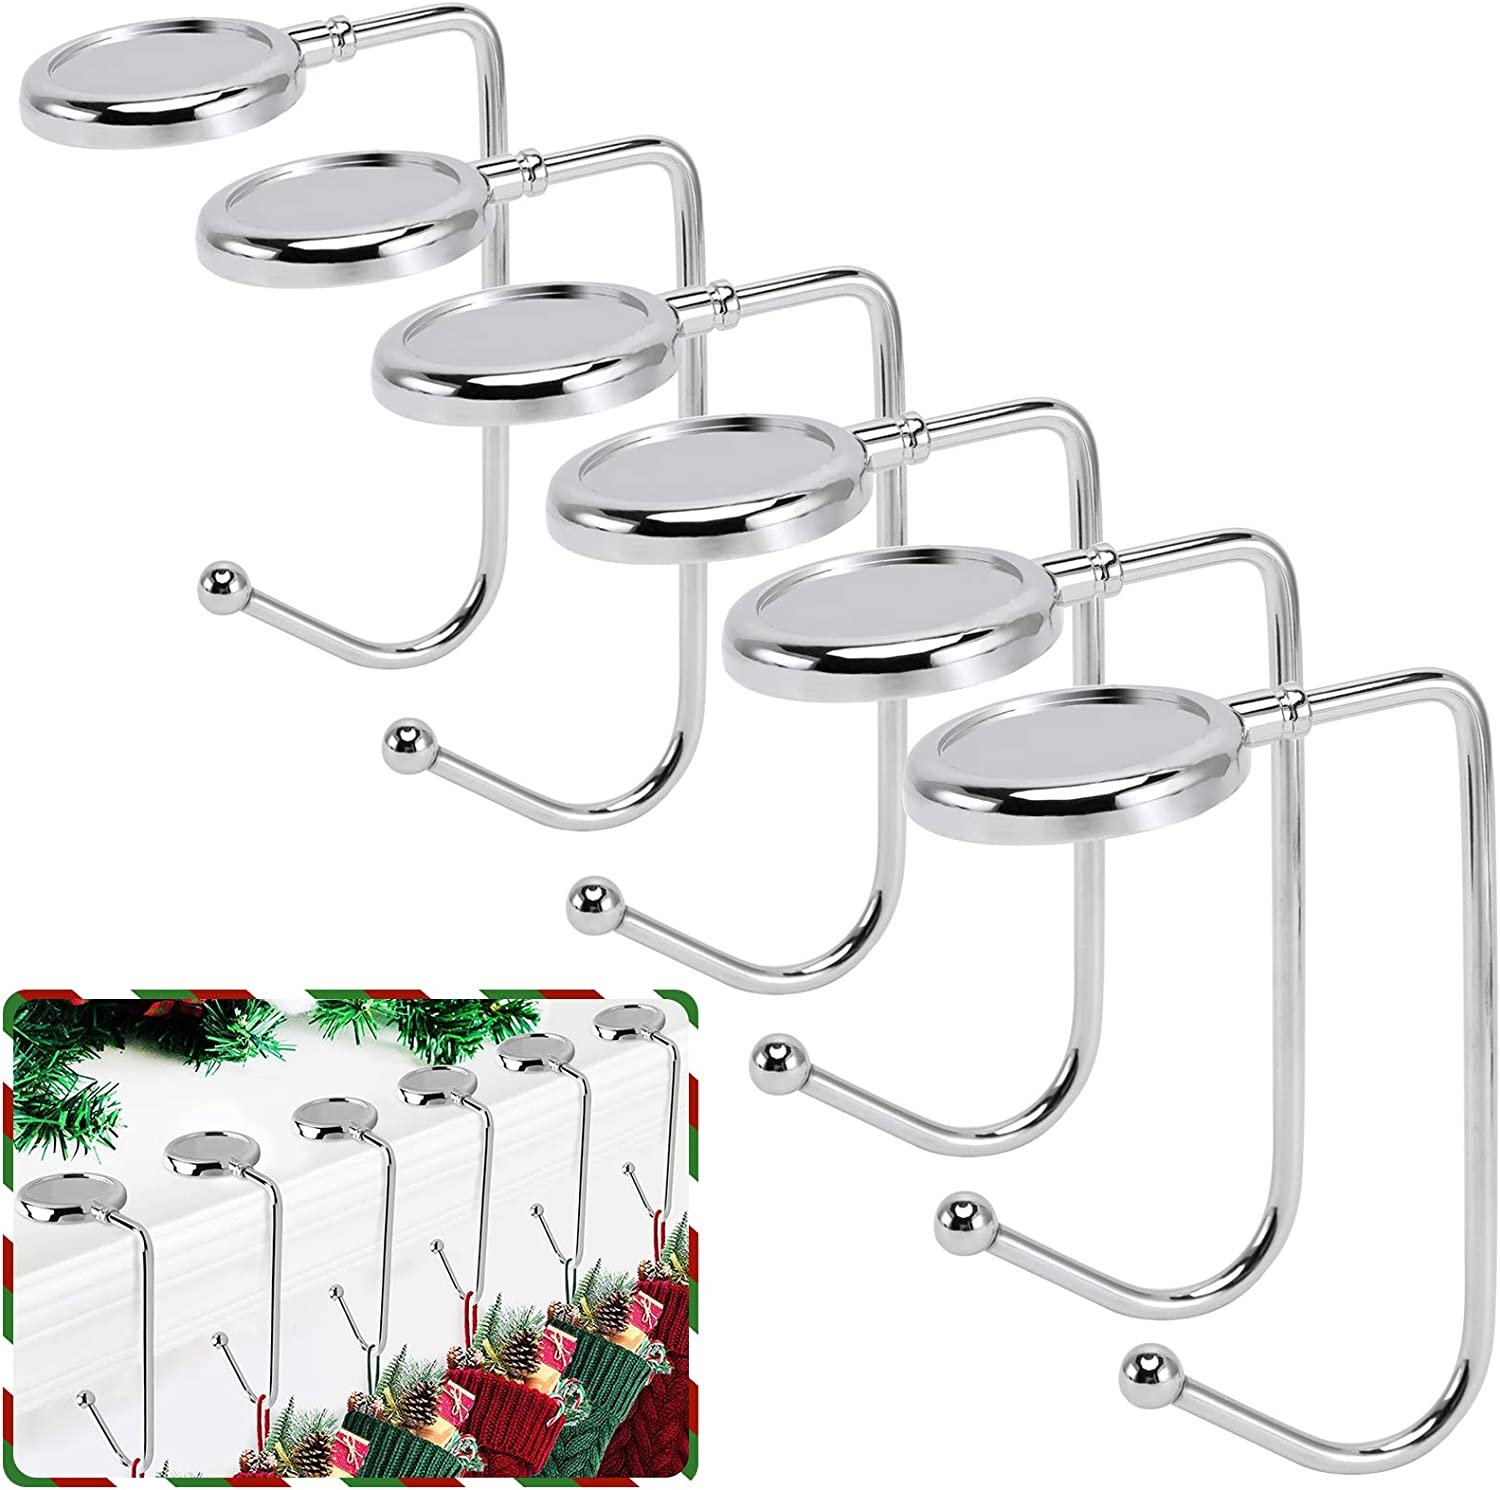 365park Christmas Stocking Holders for Mantle, 6 Pack Mantel Stocking Hangers Metal Hooks for Fireplace Christmas Xmas Party Decoration (Silver)